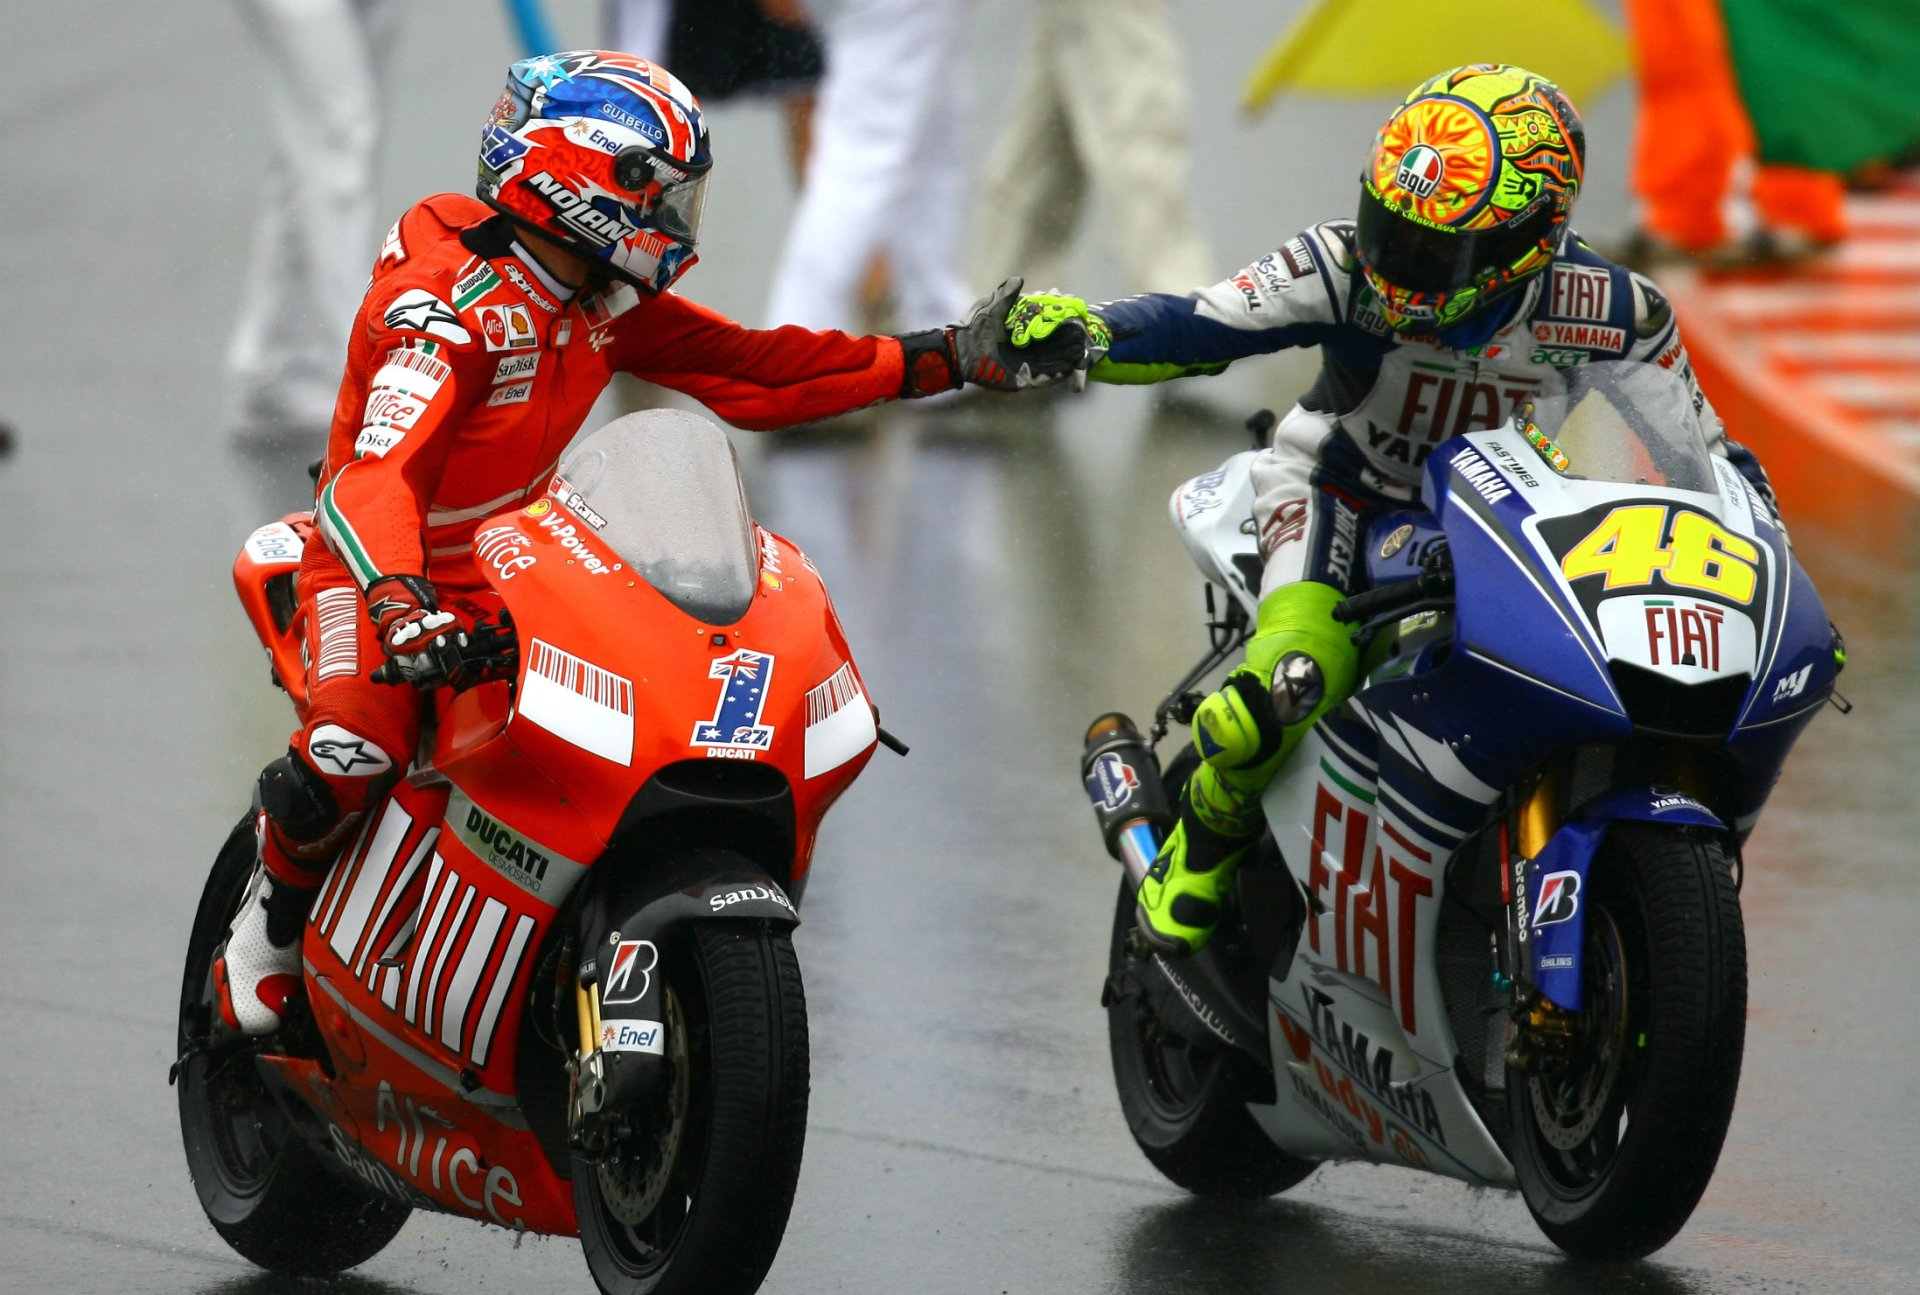 Motorcycle racing hd wallpaper background image 2195x1480 id 236155 wallpaper abyss - Superbike wallpaper ...